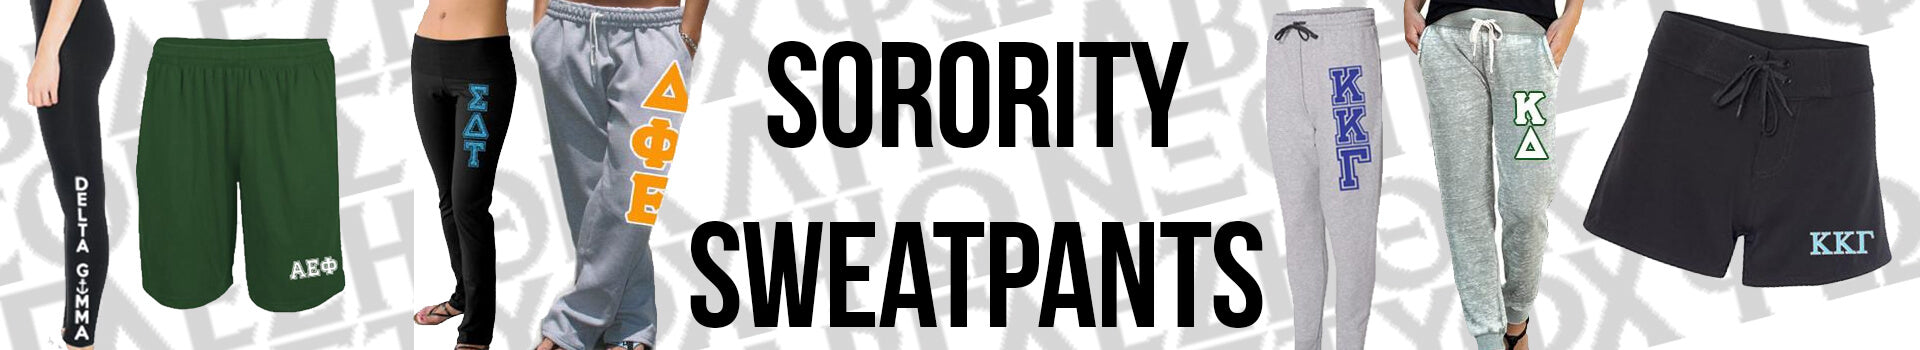 Custom Greek Sorority Sweatpants, Shorts, and Pants